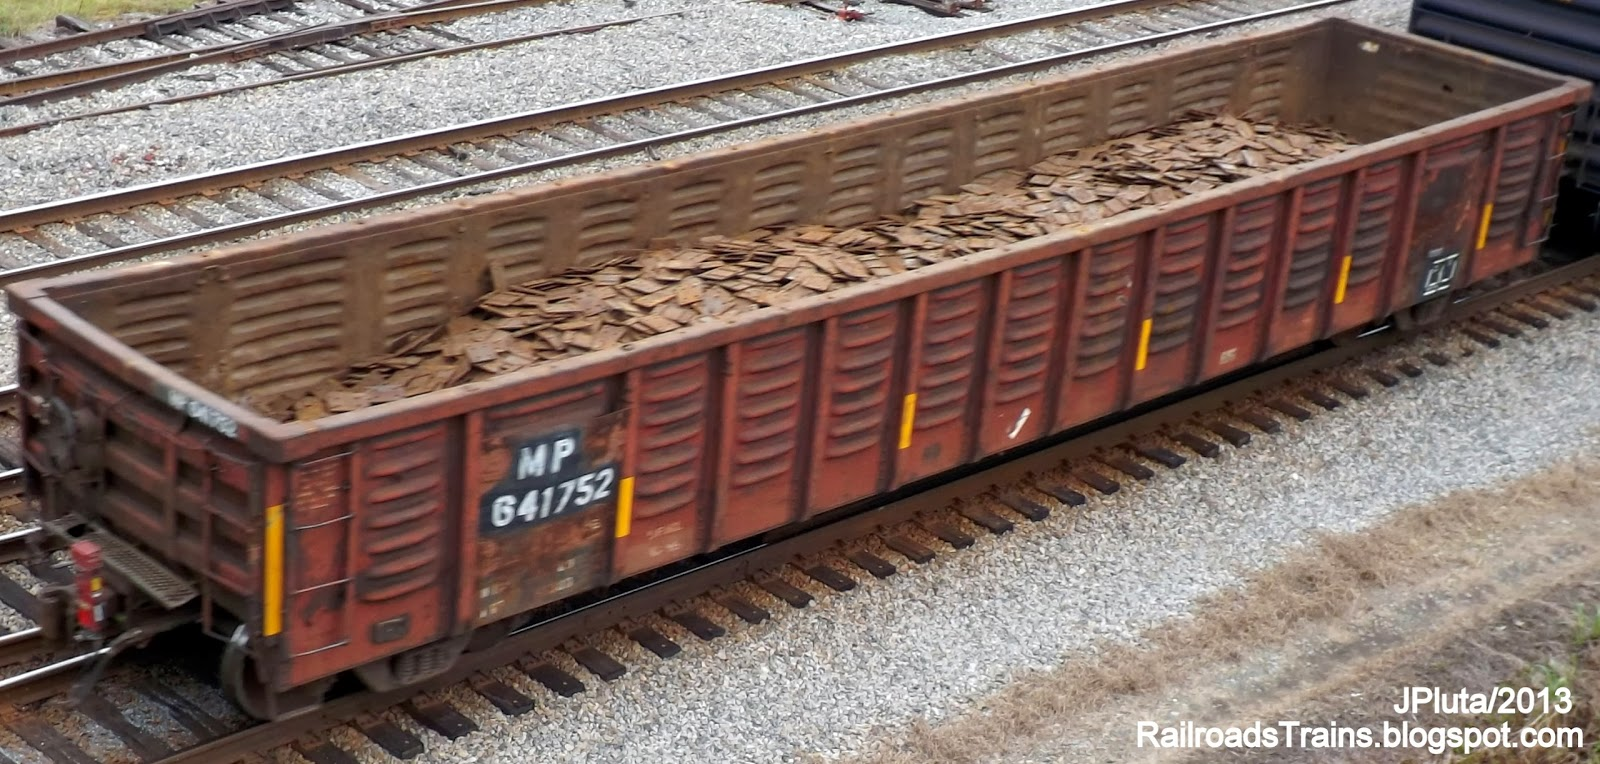 What Can Be Shipped In Rail Gondola Cars